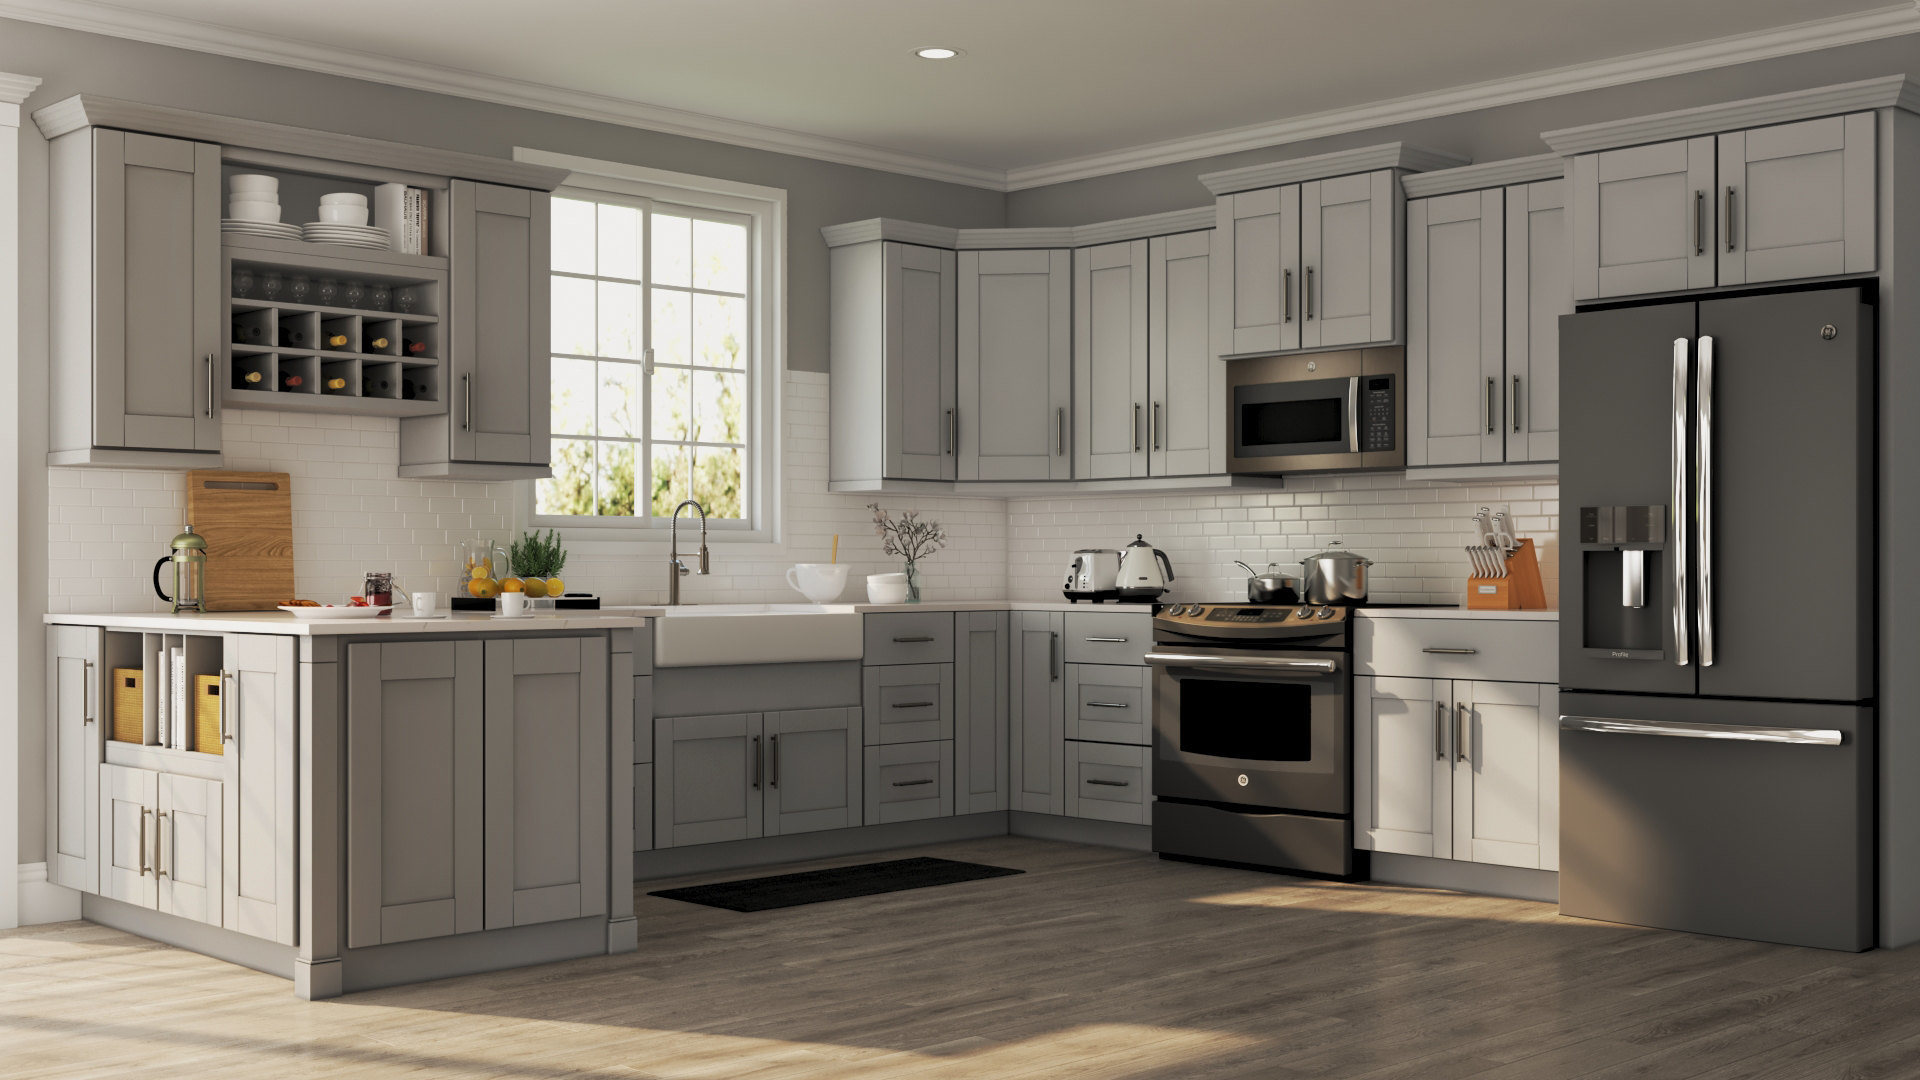 Shaker Gray Coordinating Cabinet Hardware Kitchen The